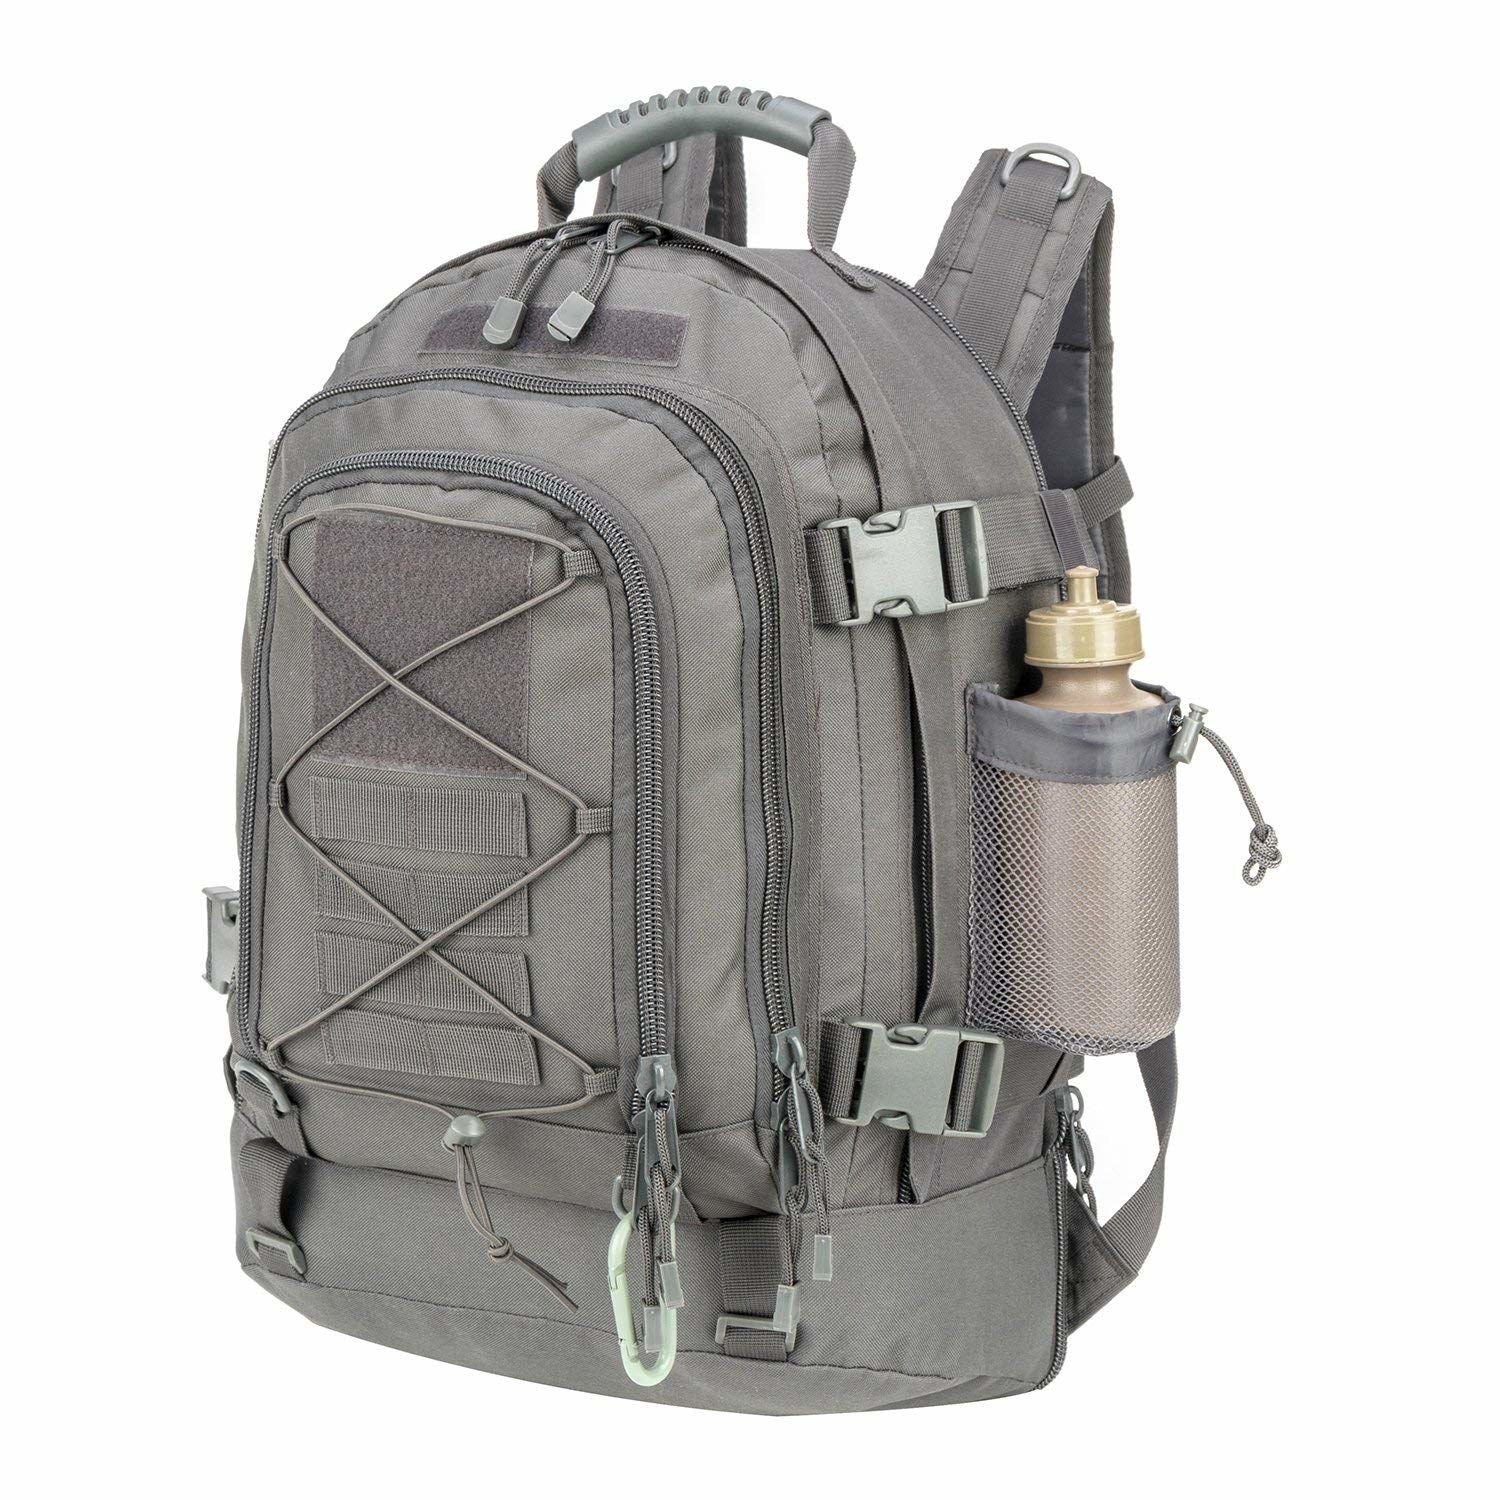 0b30b04c21cd An expandable pack to help you make the most of your camping or hiking trip.